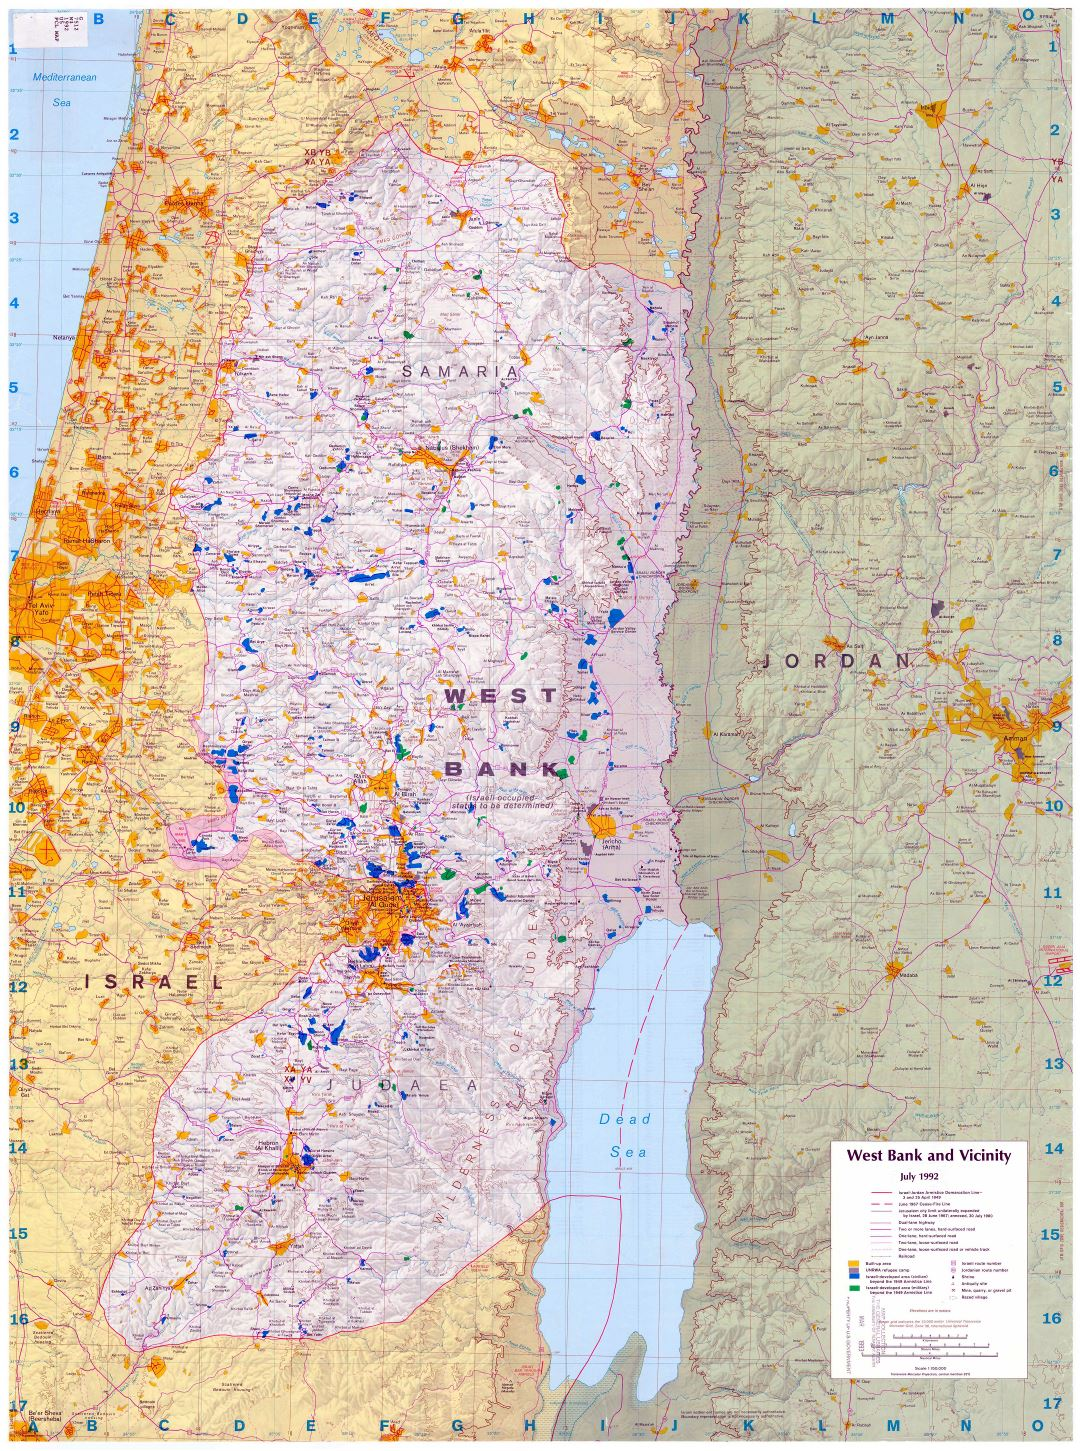 Large scale map of West Bank and vicinity - 1992